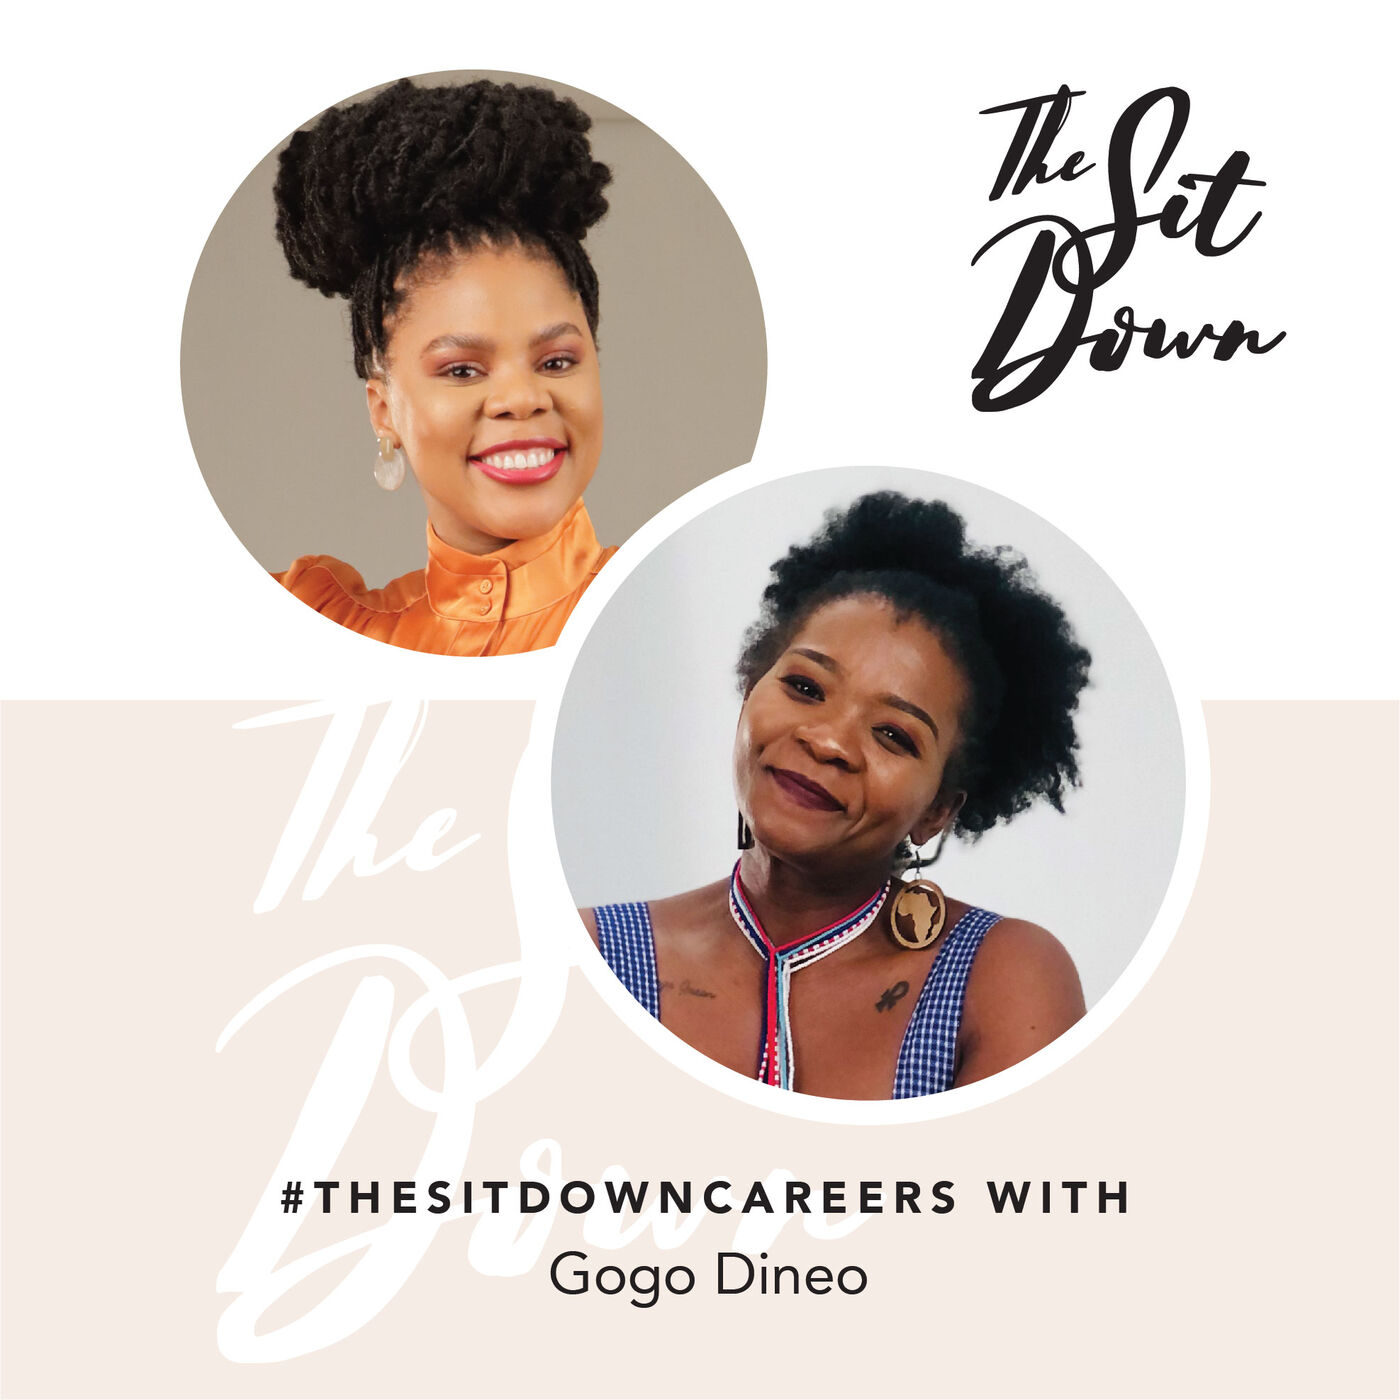 #TheSitDownCareers | What Should The Workplace Look Like, In An African Context?